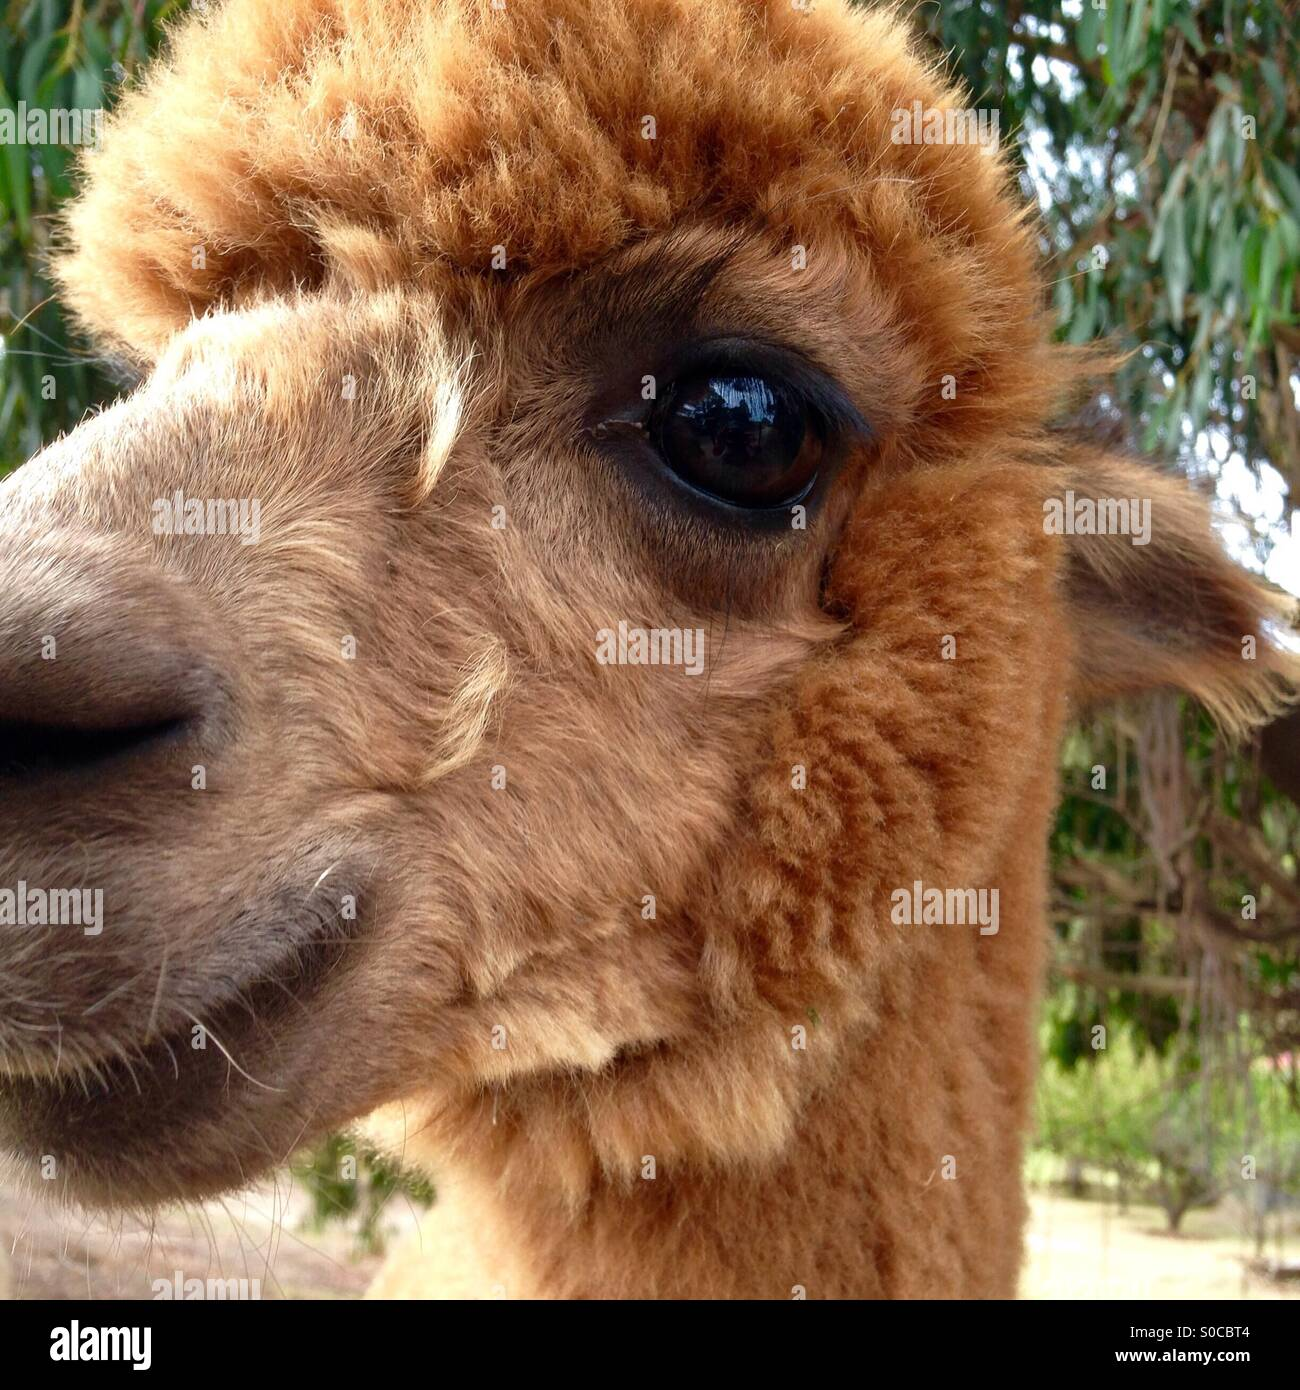 Alpaca coming in for a sniff - Stock Image